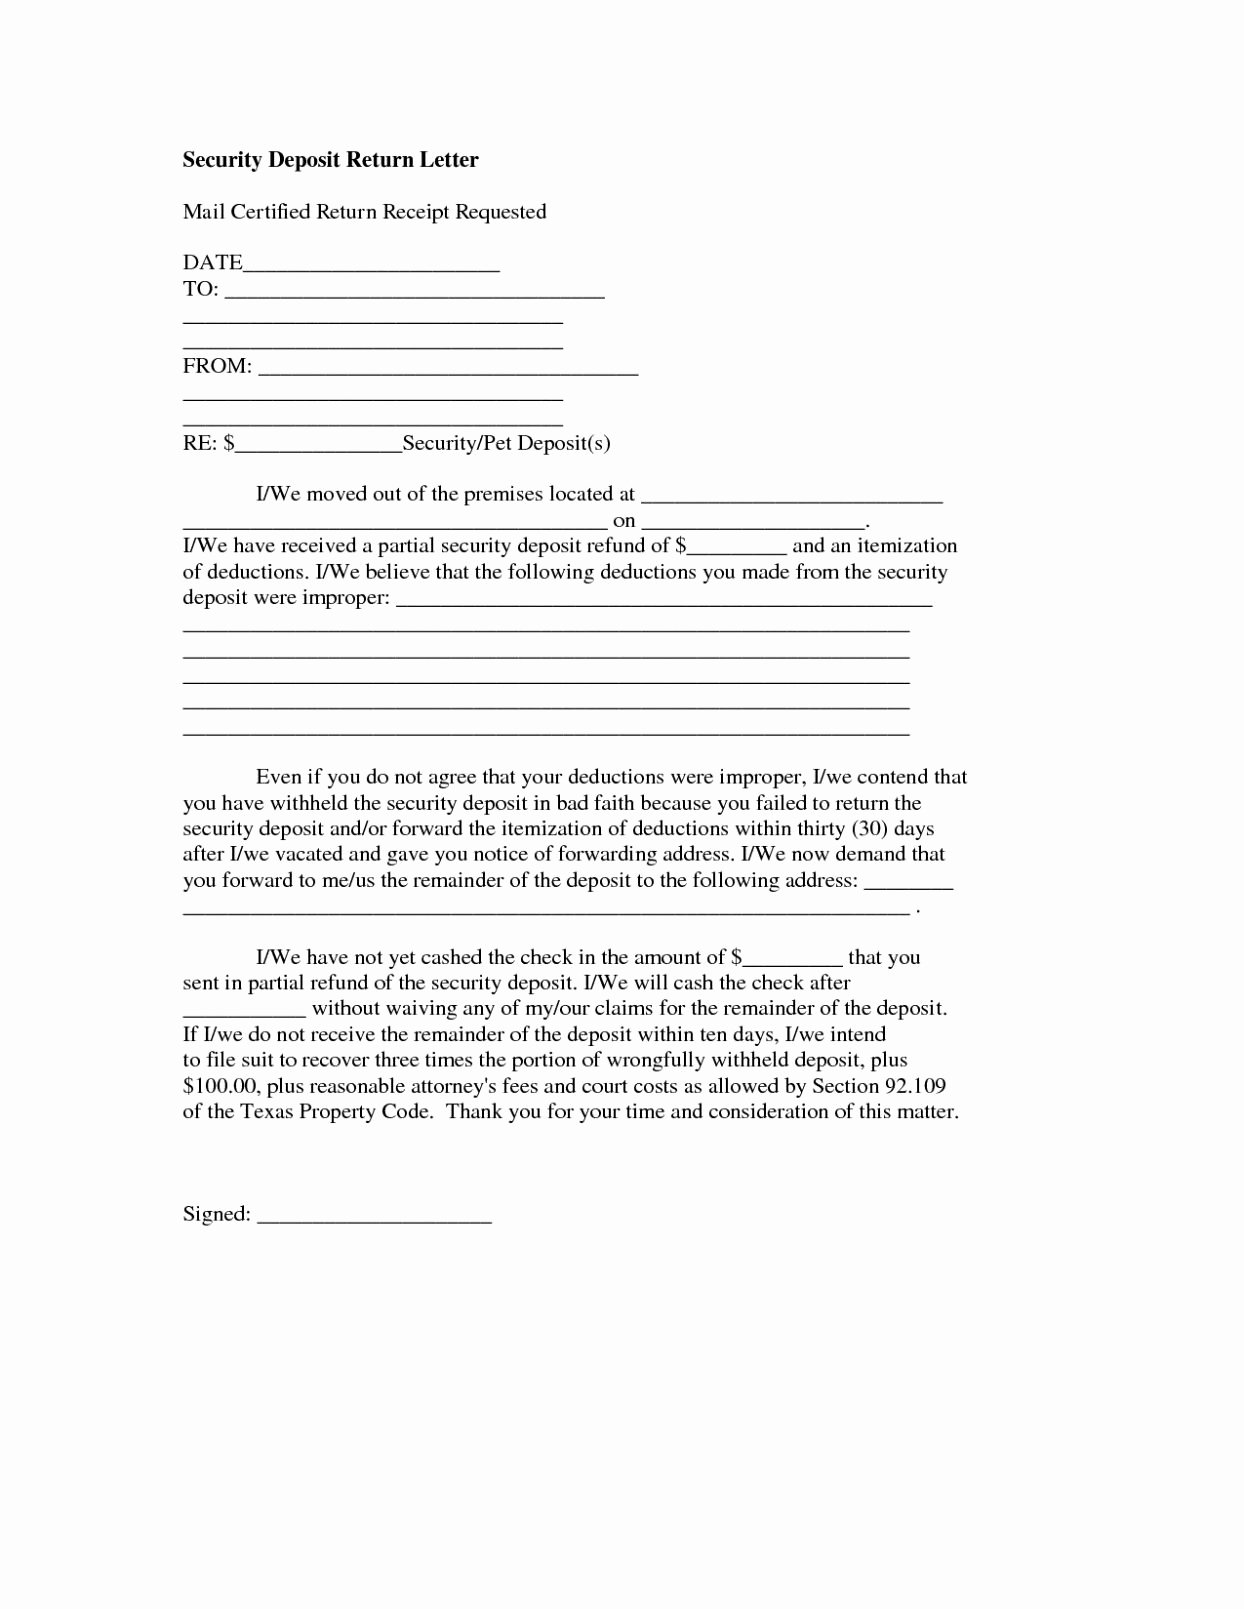 Security Deposit Letter format Inspirational Receipt Deposit Letter Examples Rental Template for